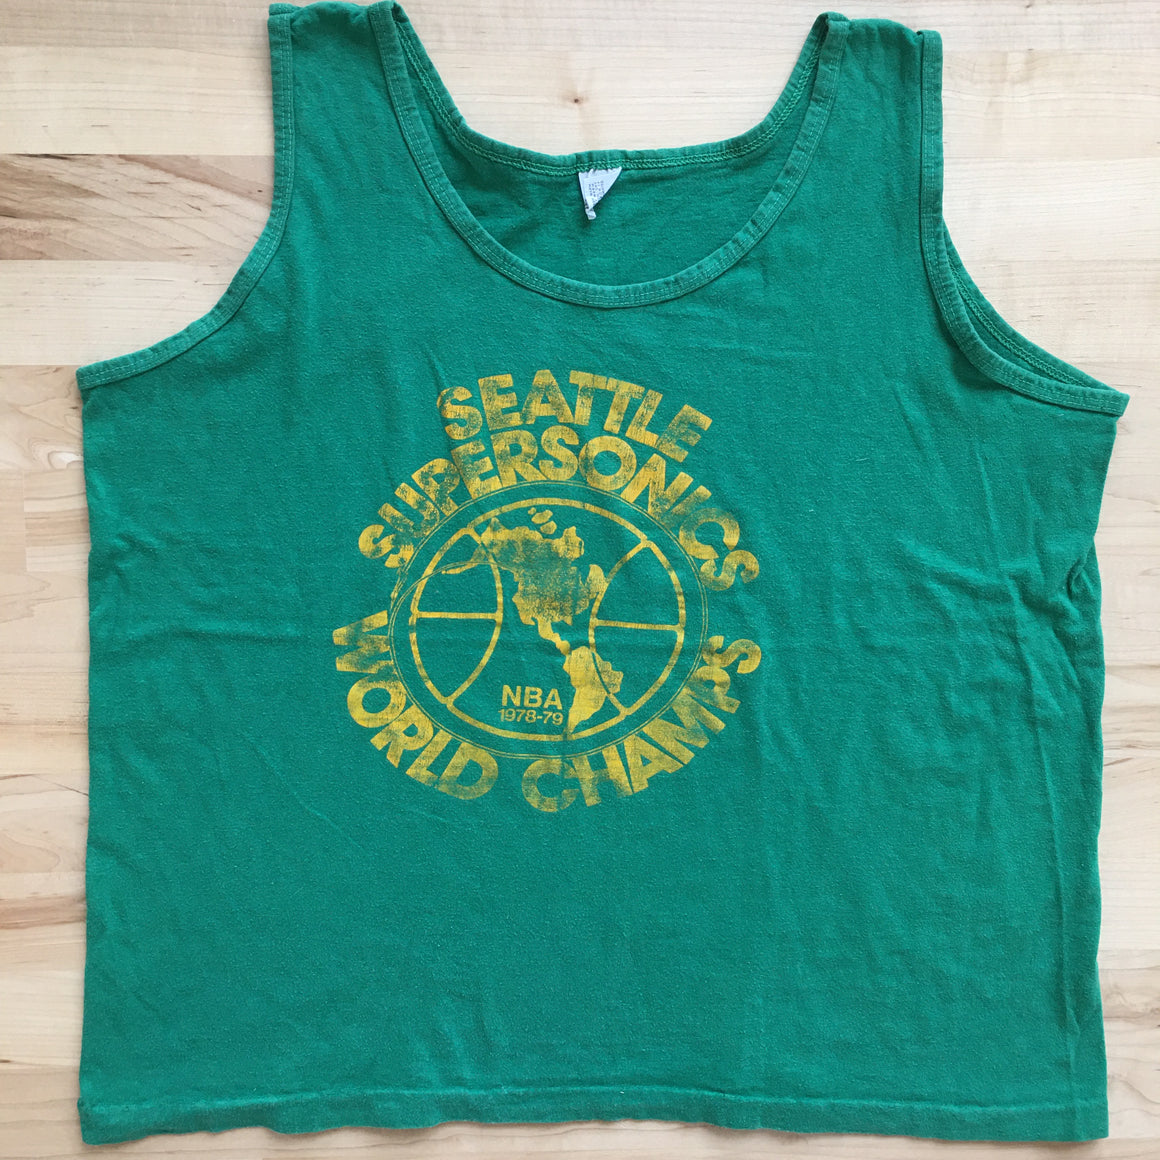 Seattle SuperSonics 1979 World Champs tank top - L